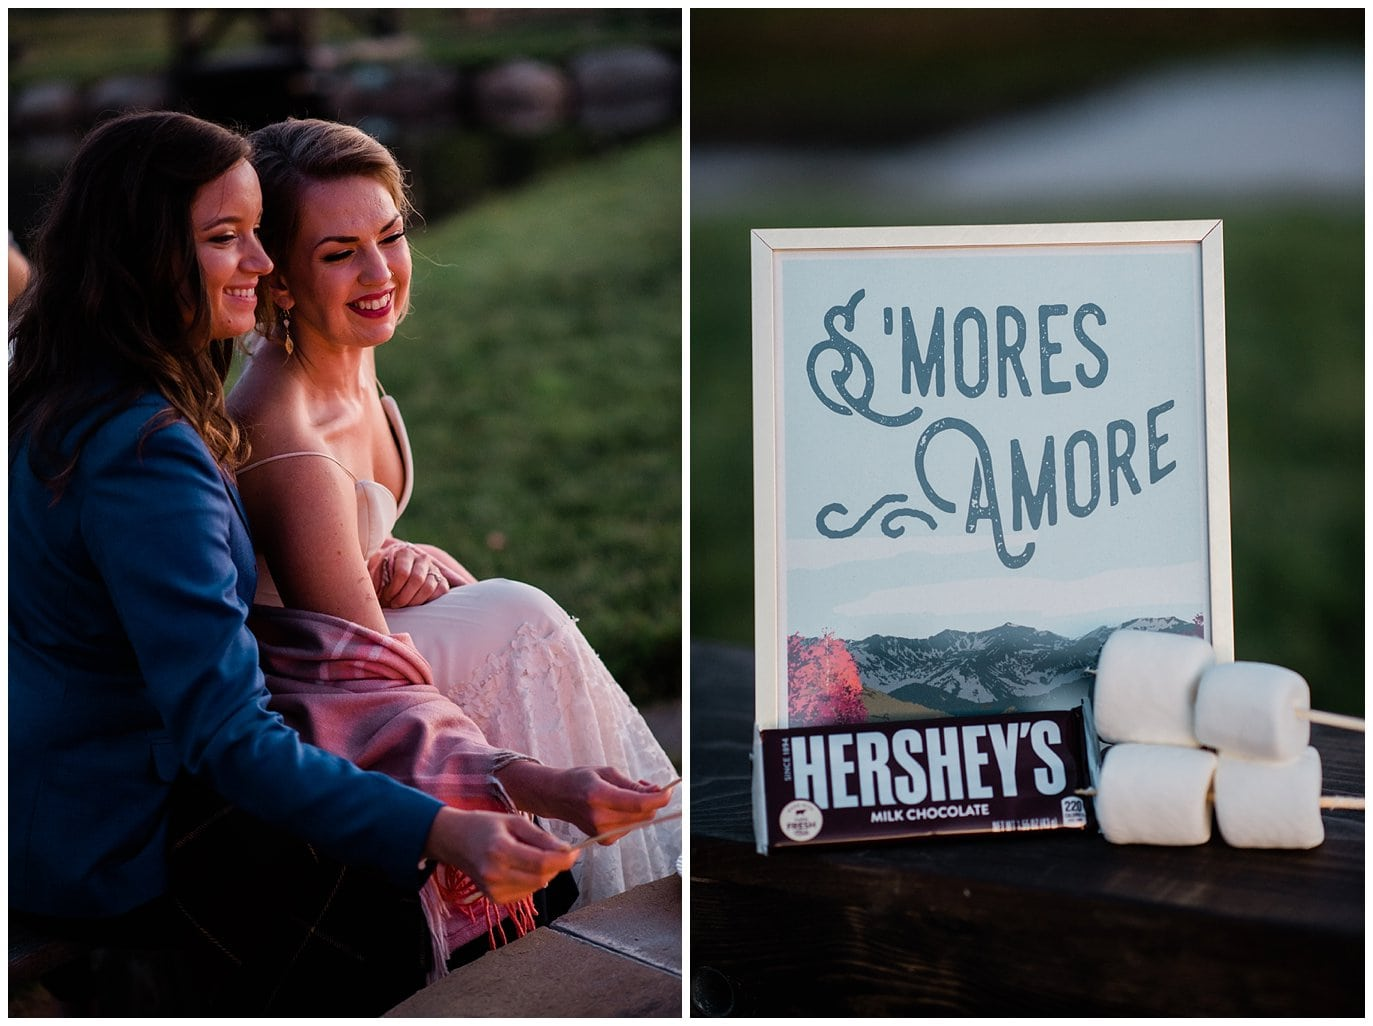 S'mores by firepit at wedding photo